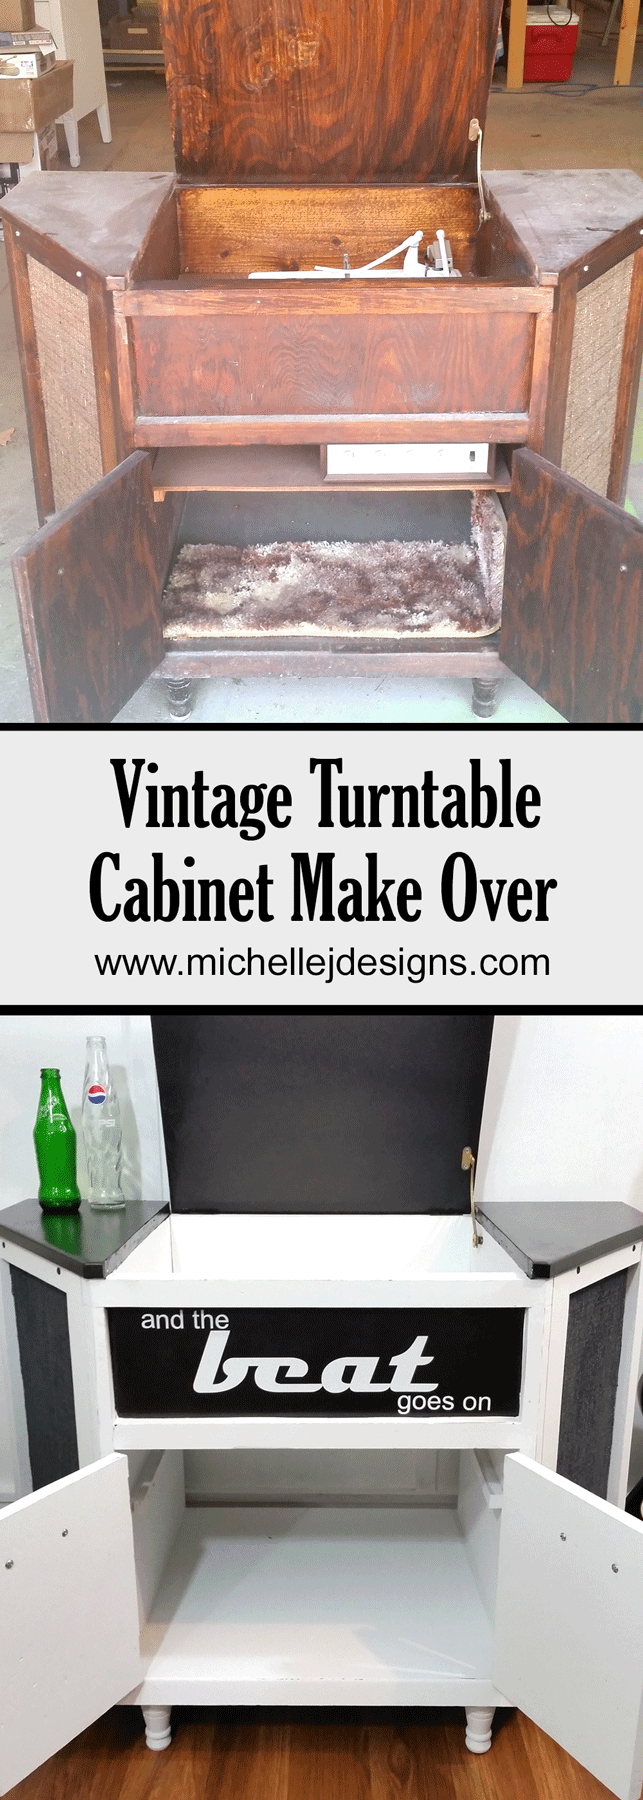 This 70's Vintage Turntable Cabinet desperately needed a make over. See how some paint transformed this vintage gem! www.michellejdesigns.com